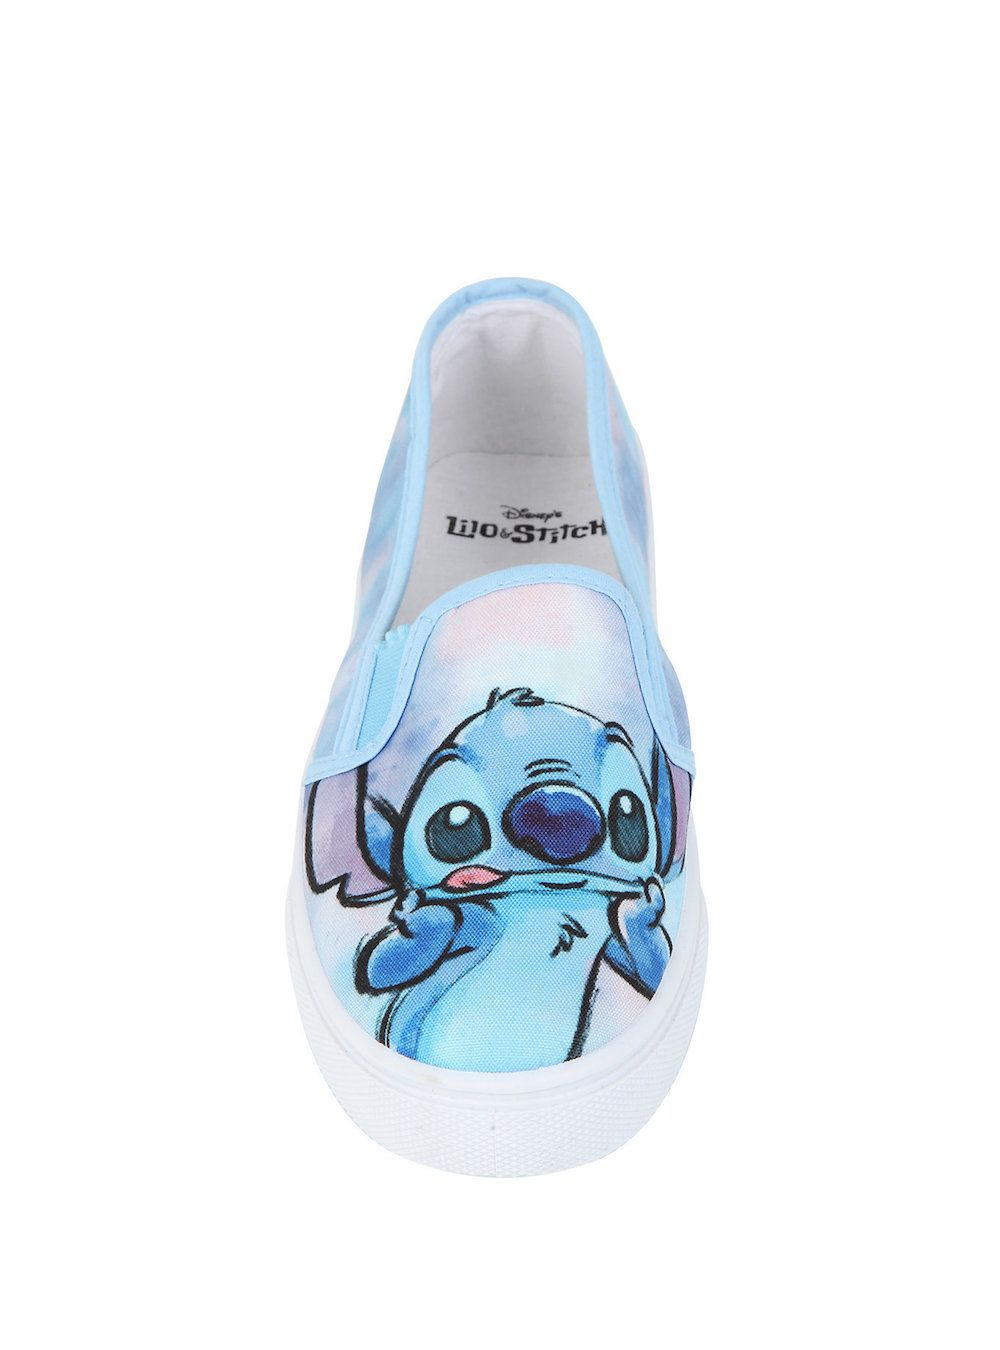 975a4218c5bf 21 Things Lilo   Stitch Things Fans Have to Have